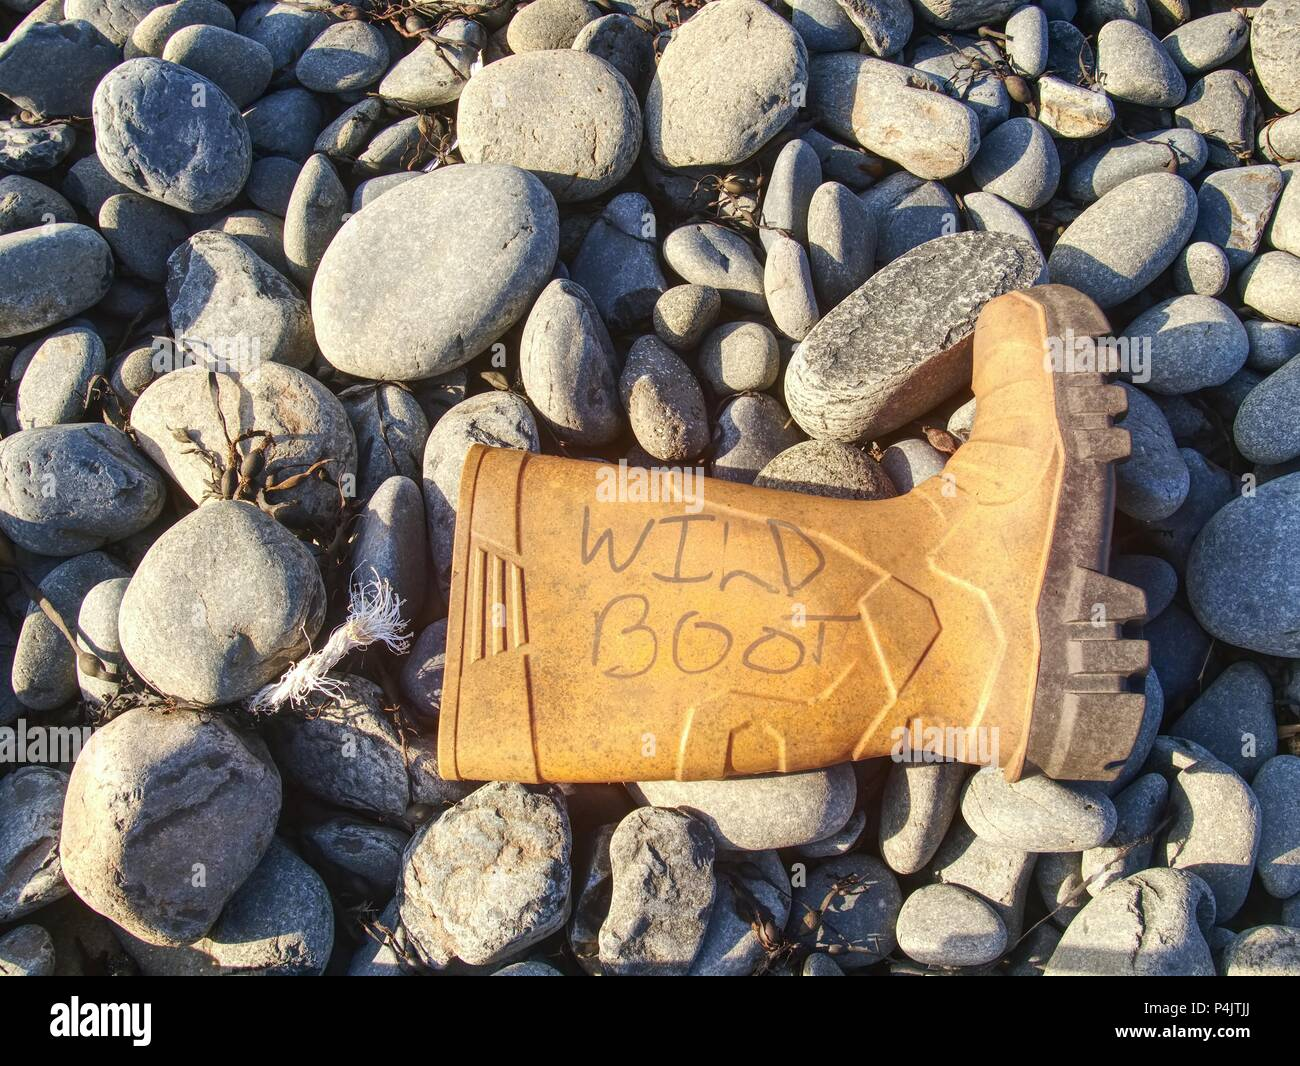 Plastic and rubbery rubbish washed up on a stony beach.  Photo showing pollution problem. Dangerous garbage ejected from the sea on remote beaches. Stock Photo